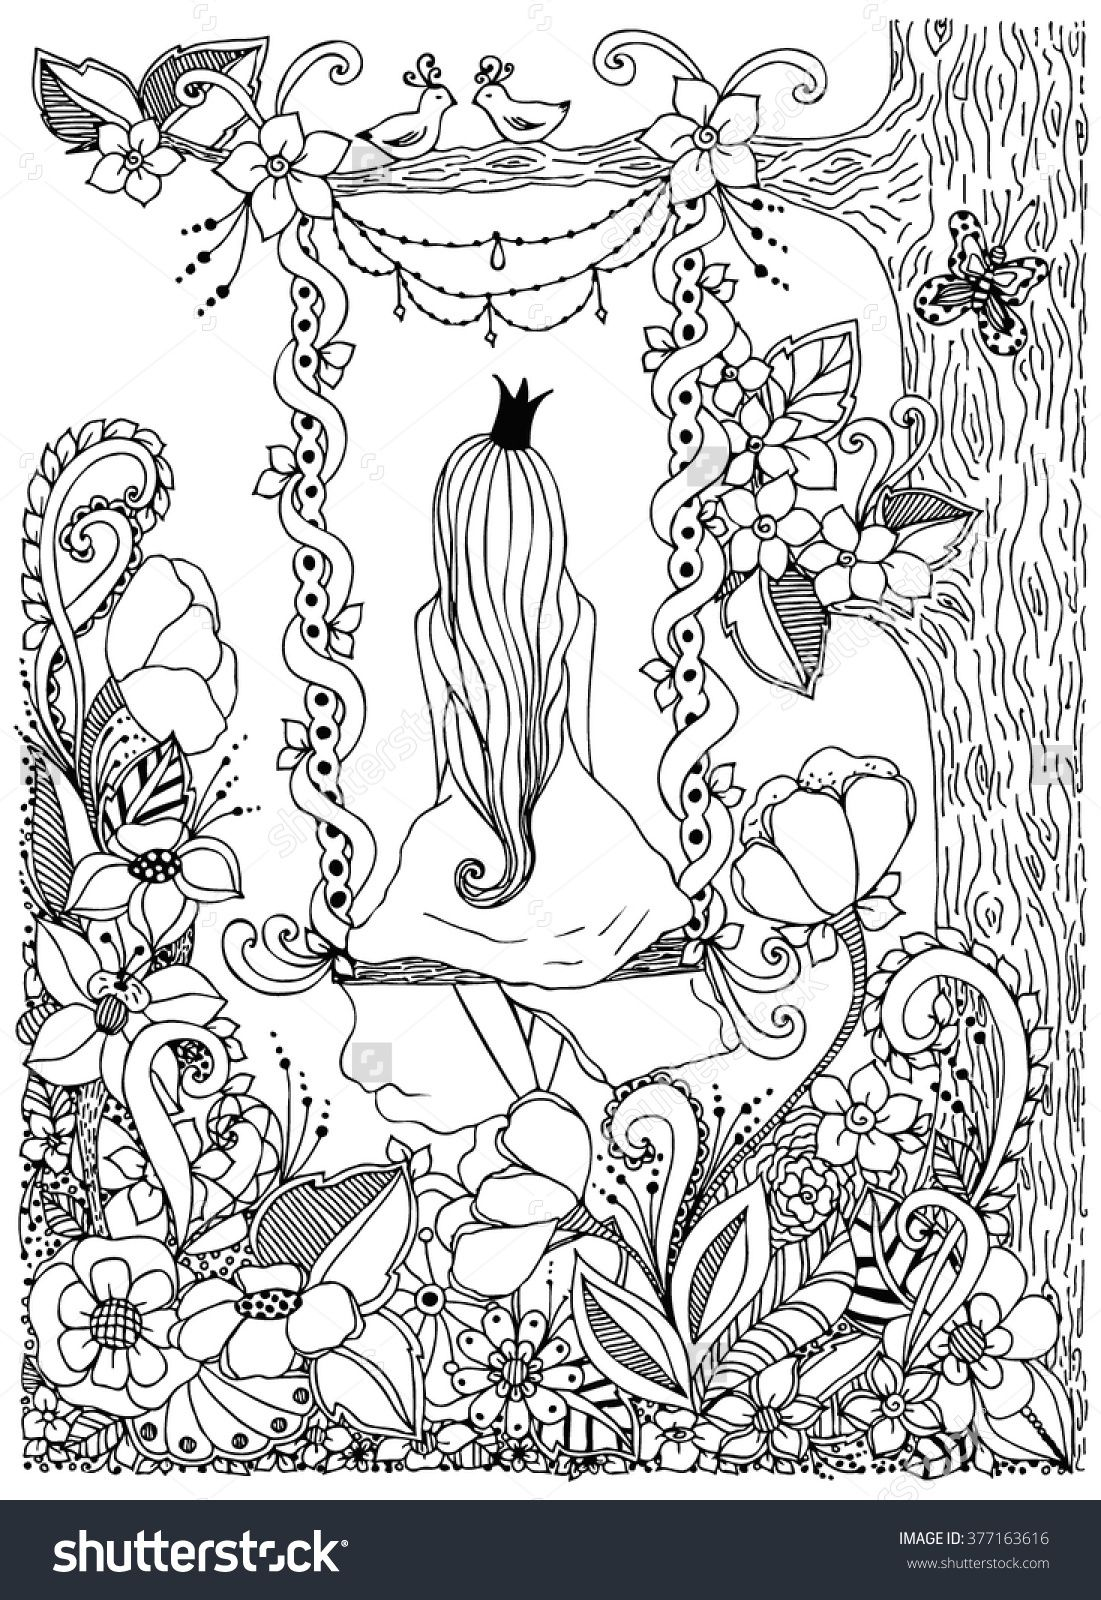 Coloring pages trees and flowers - Princess Zentangle Riding On A Swing Garden Flowers Birds In A Tree Adult Coloring Pagesadult